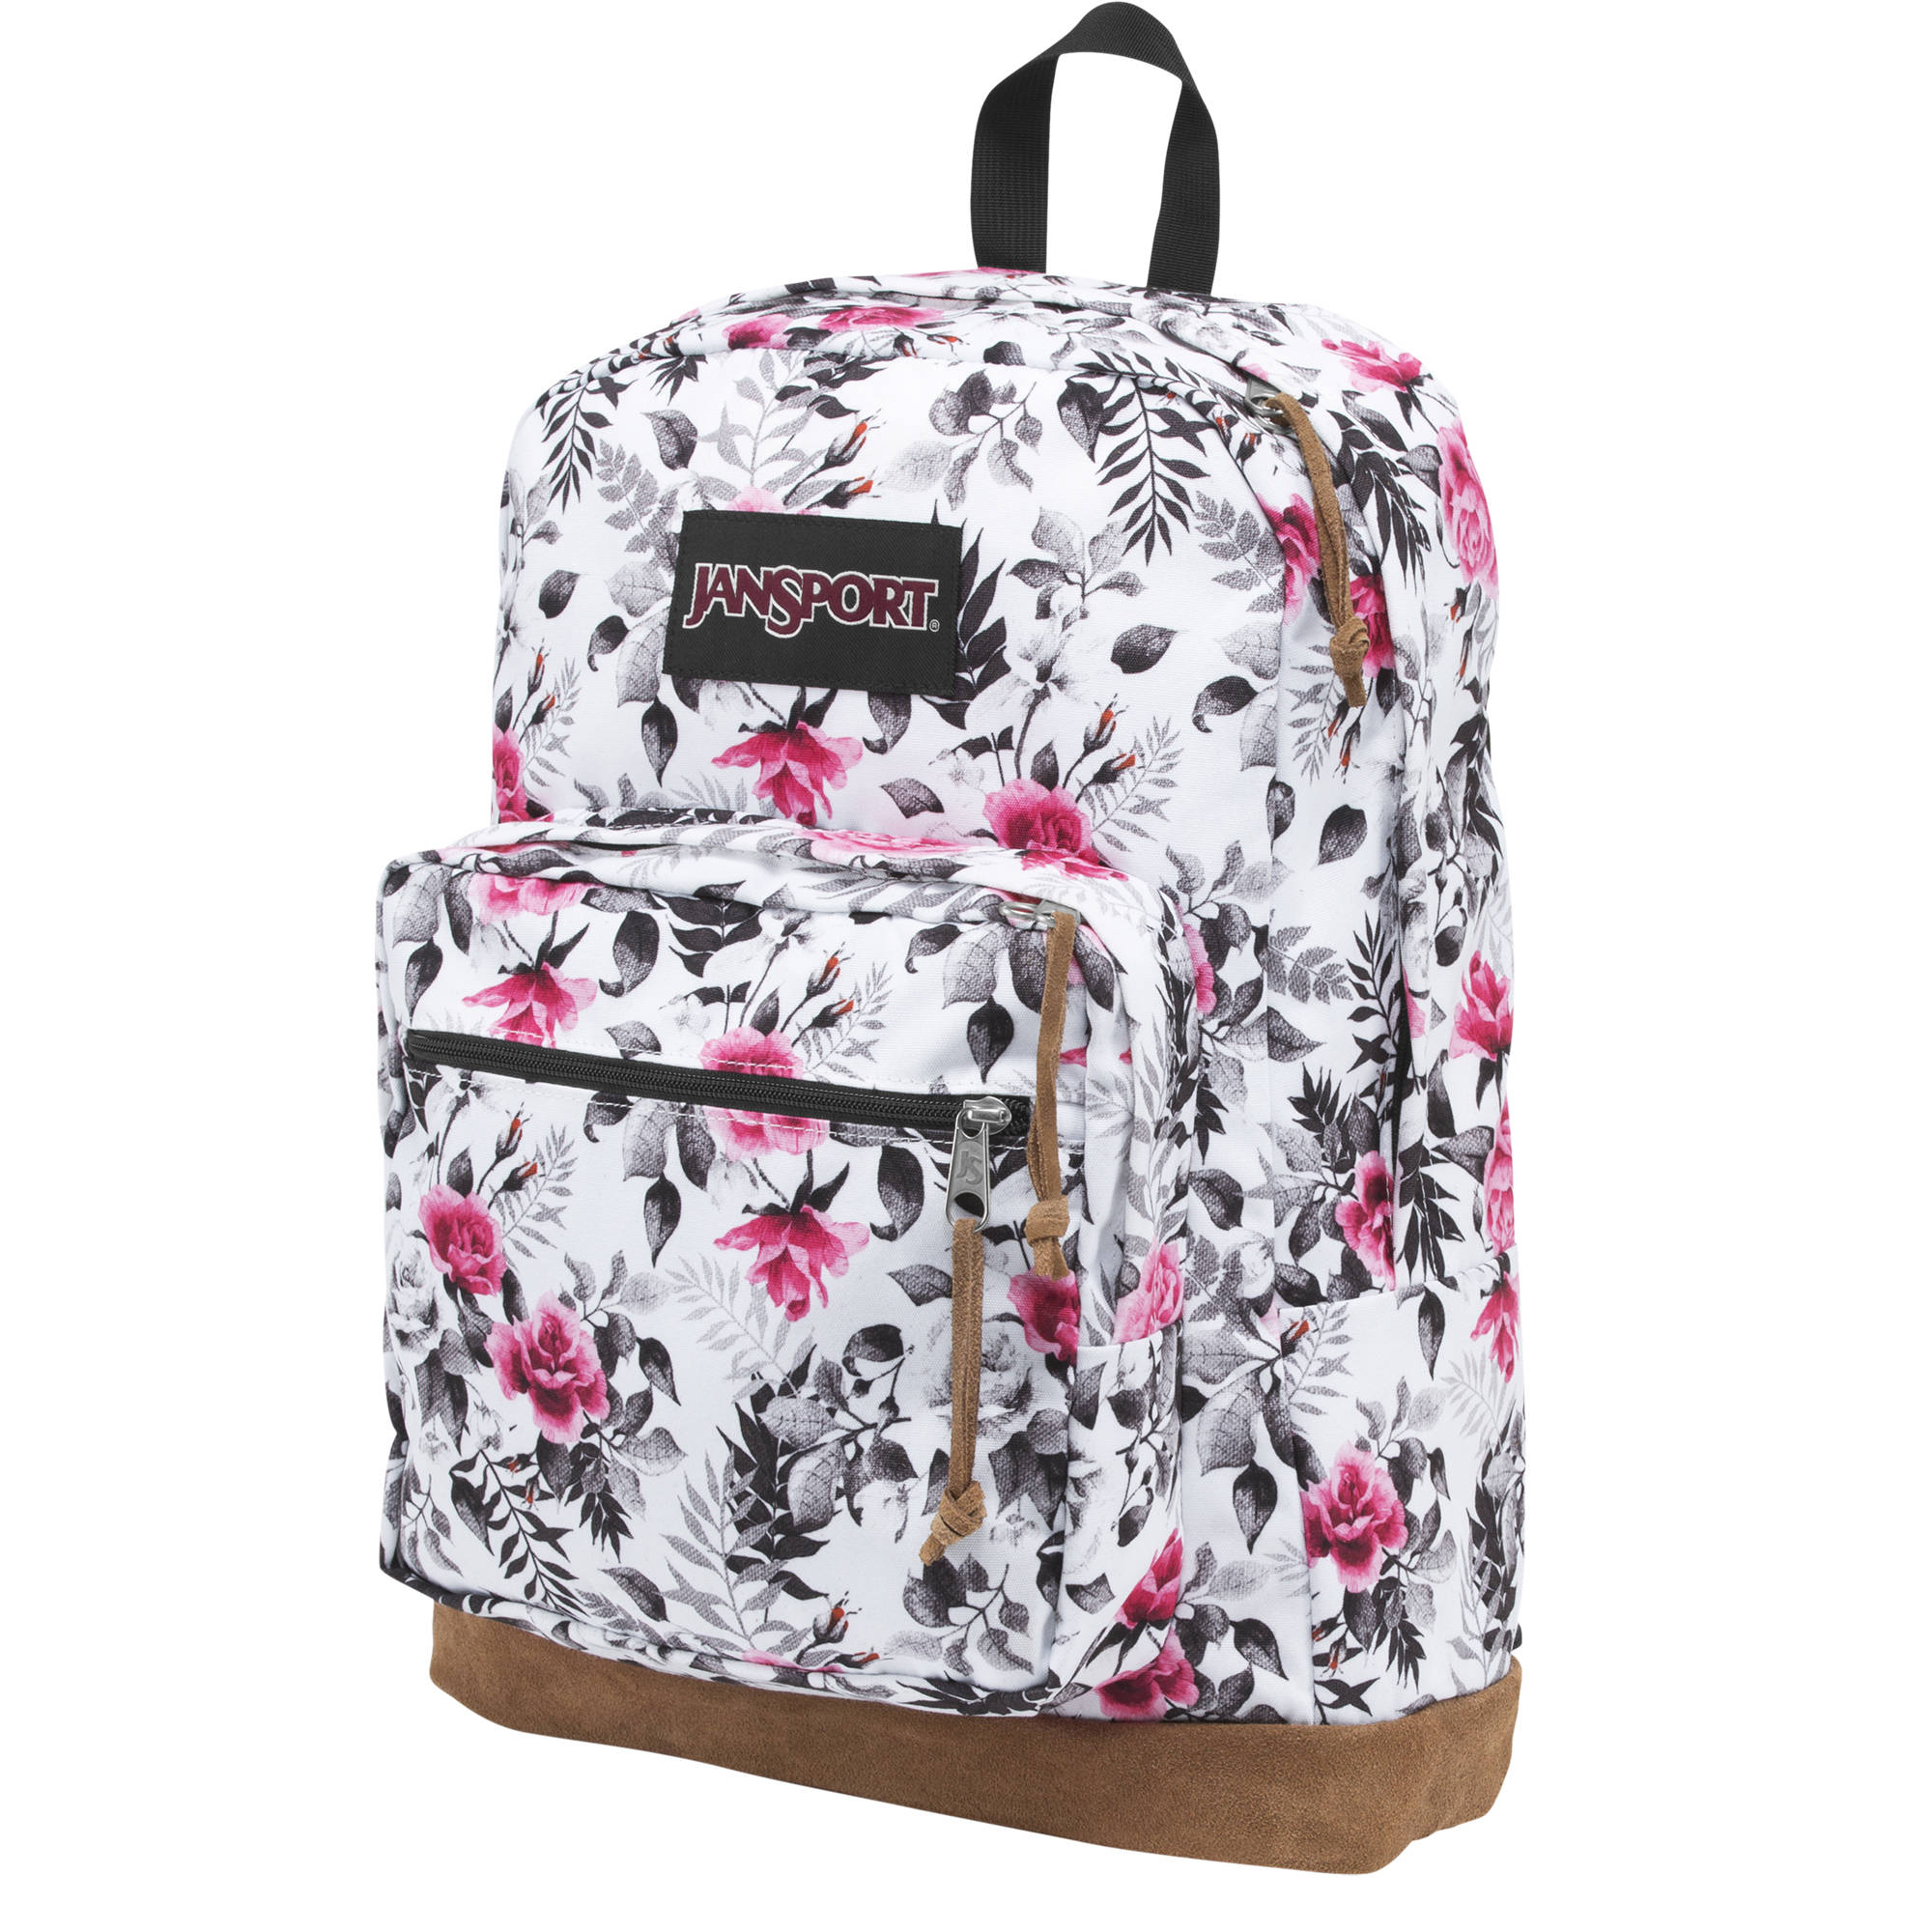 2960ee42e2 JanSport Right Pack Expressions 31L Backpack (Multi Black White Graphic  Floral)